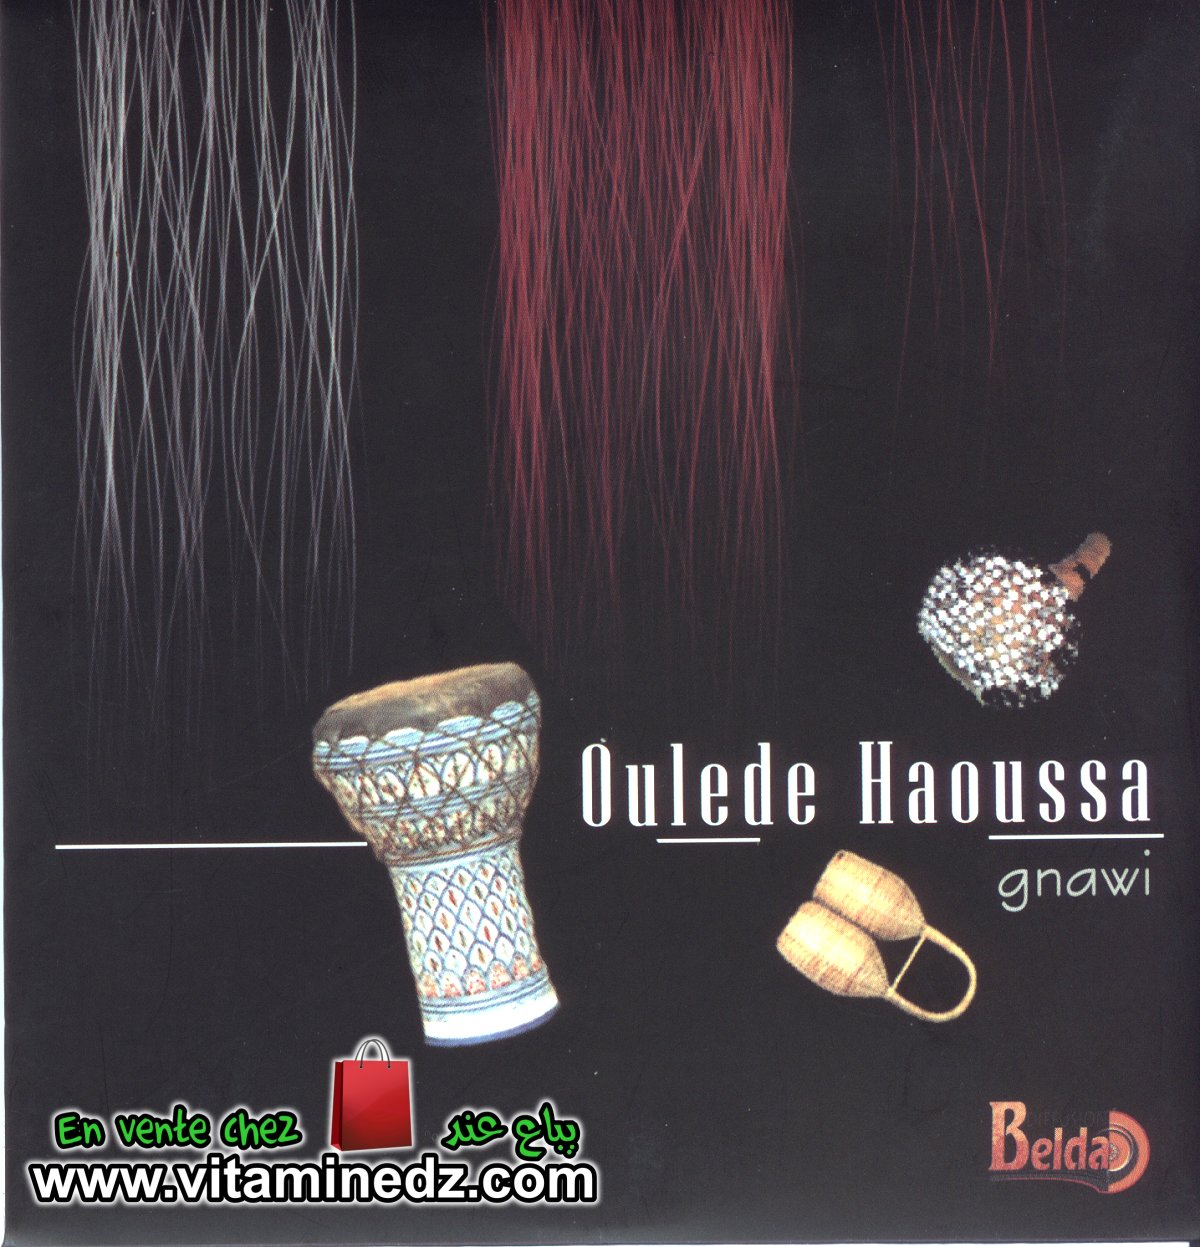 Oulede Haoussa - Gnawi